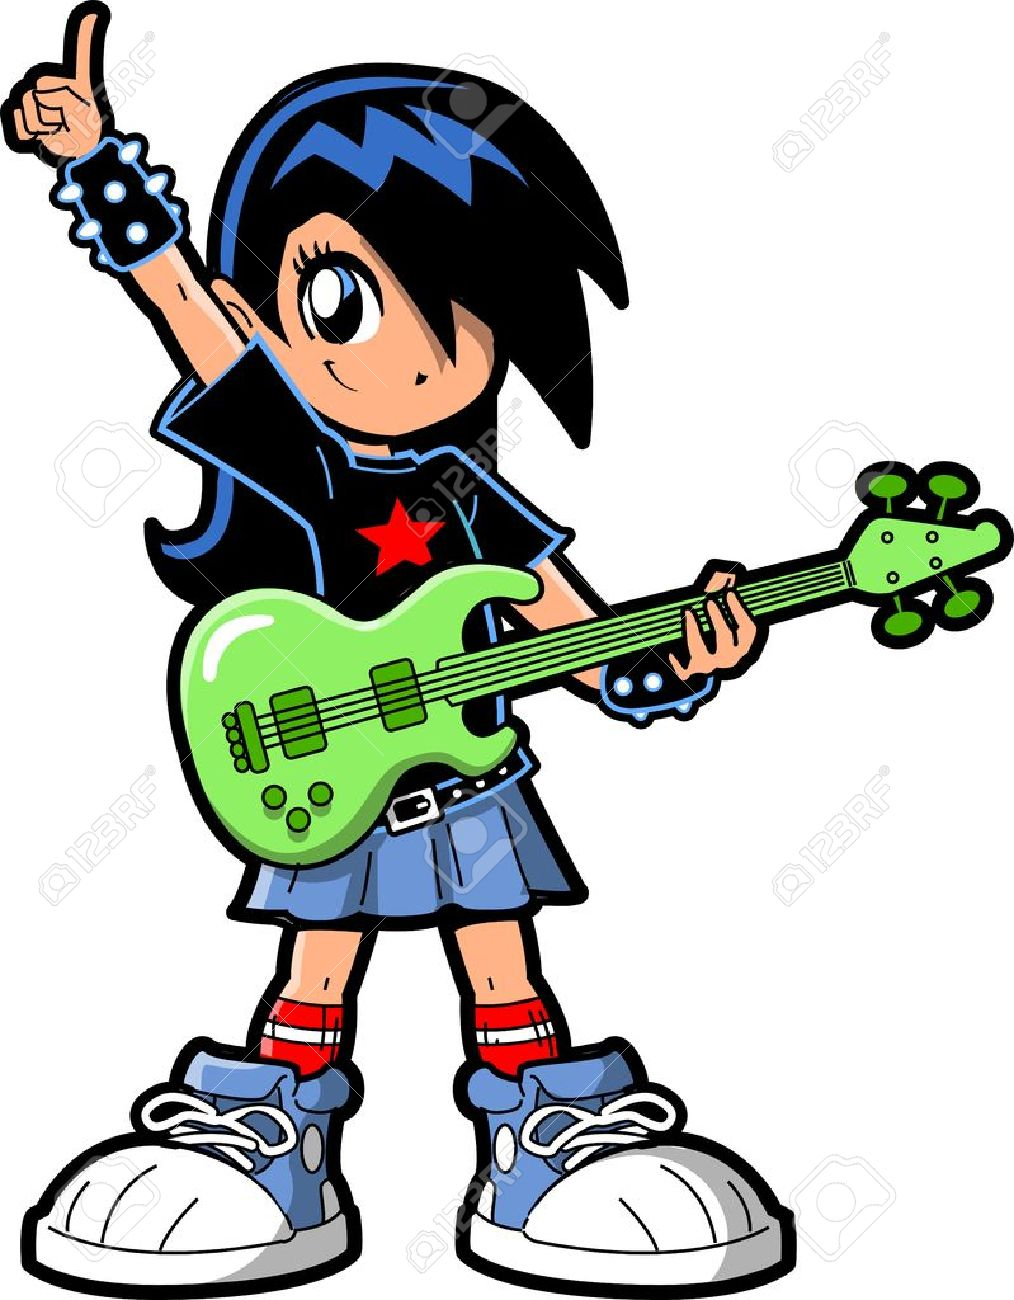 anime manga girl goth emo rock star guitar bass player stock vector 20686647